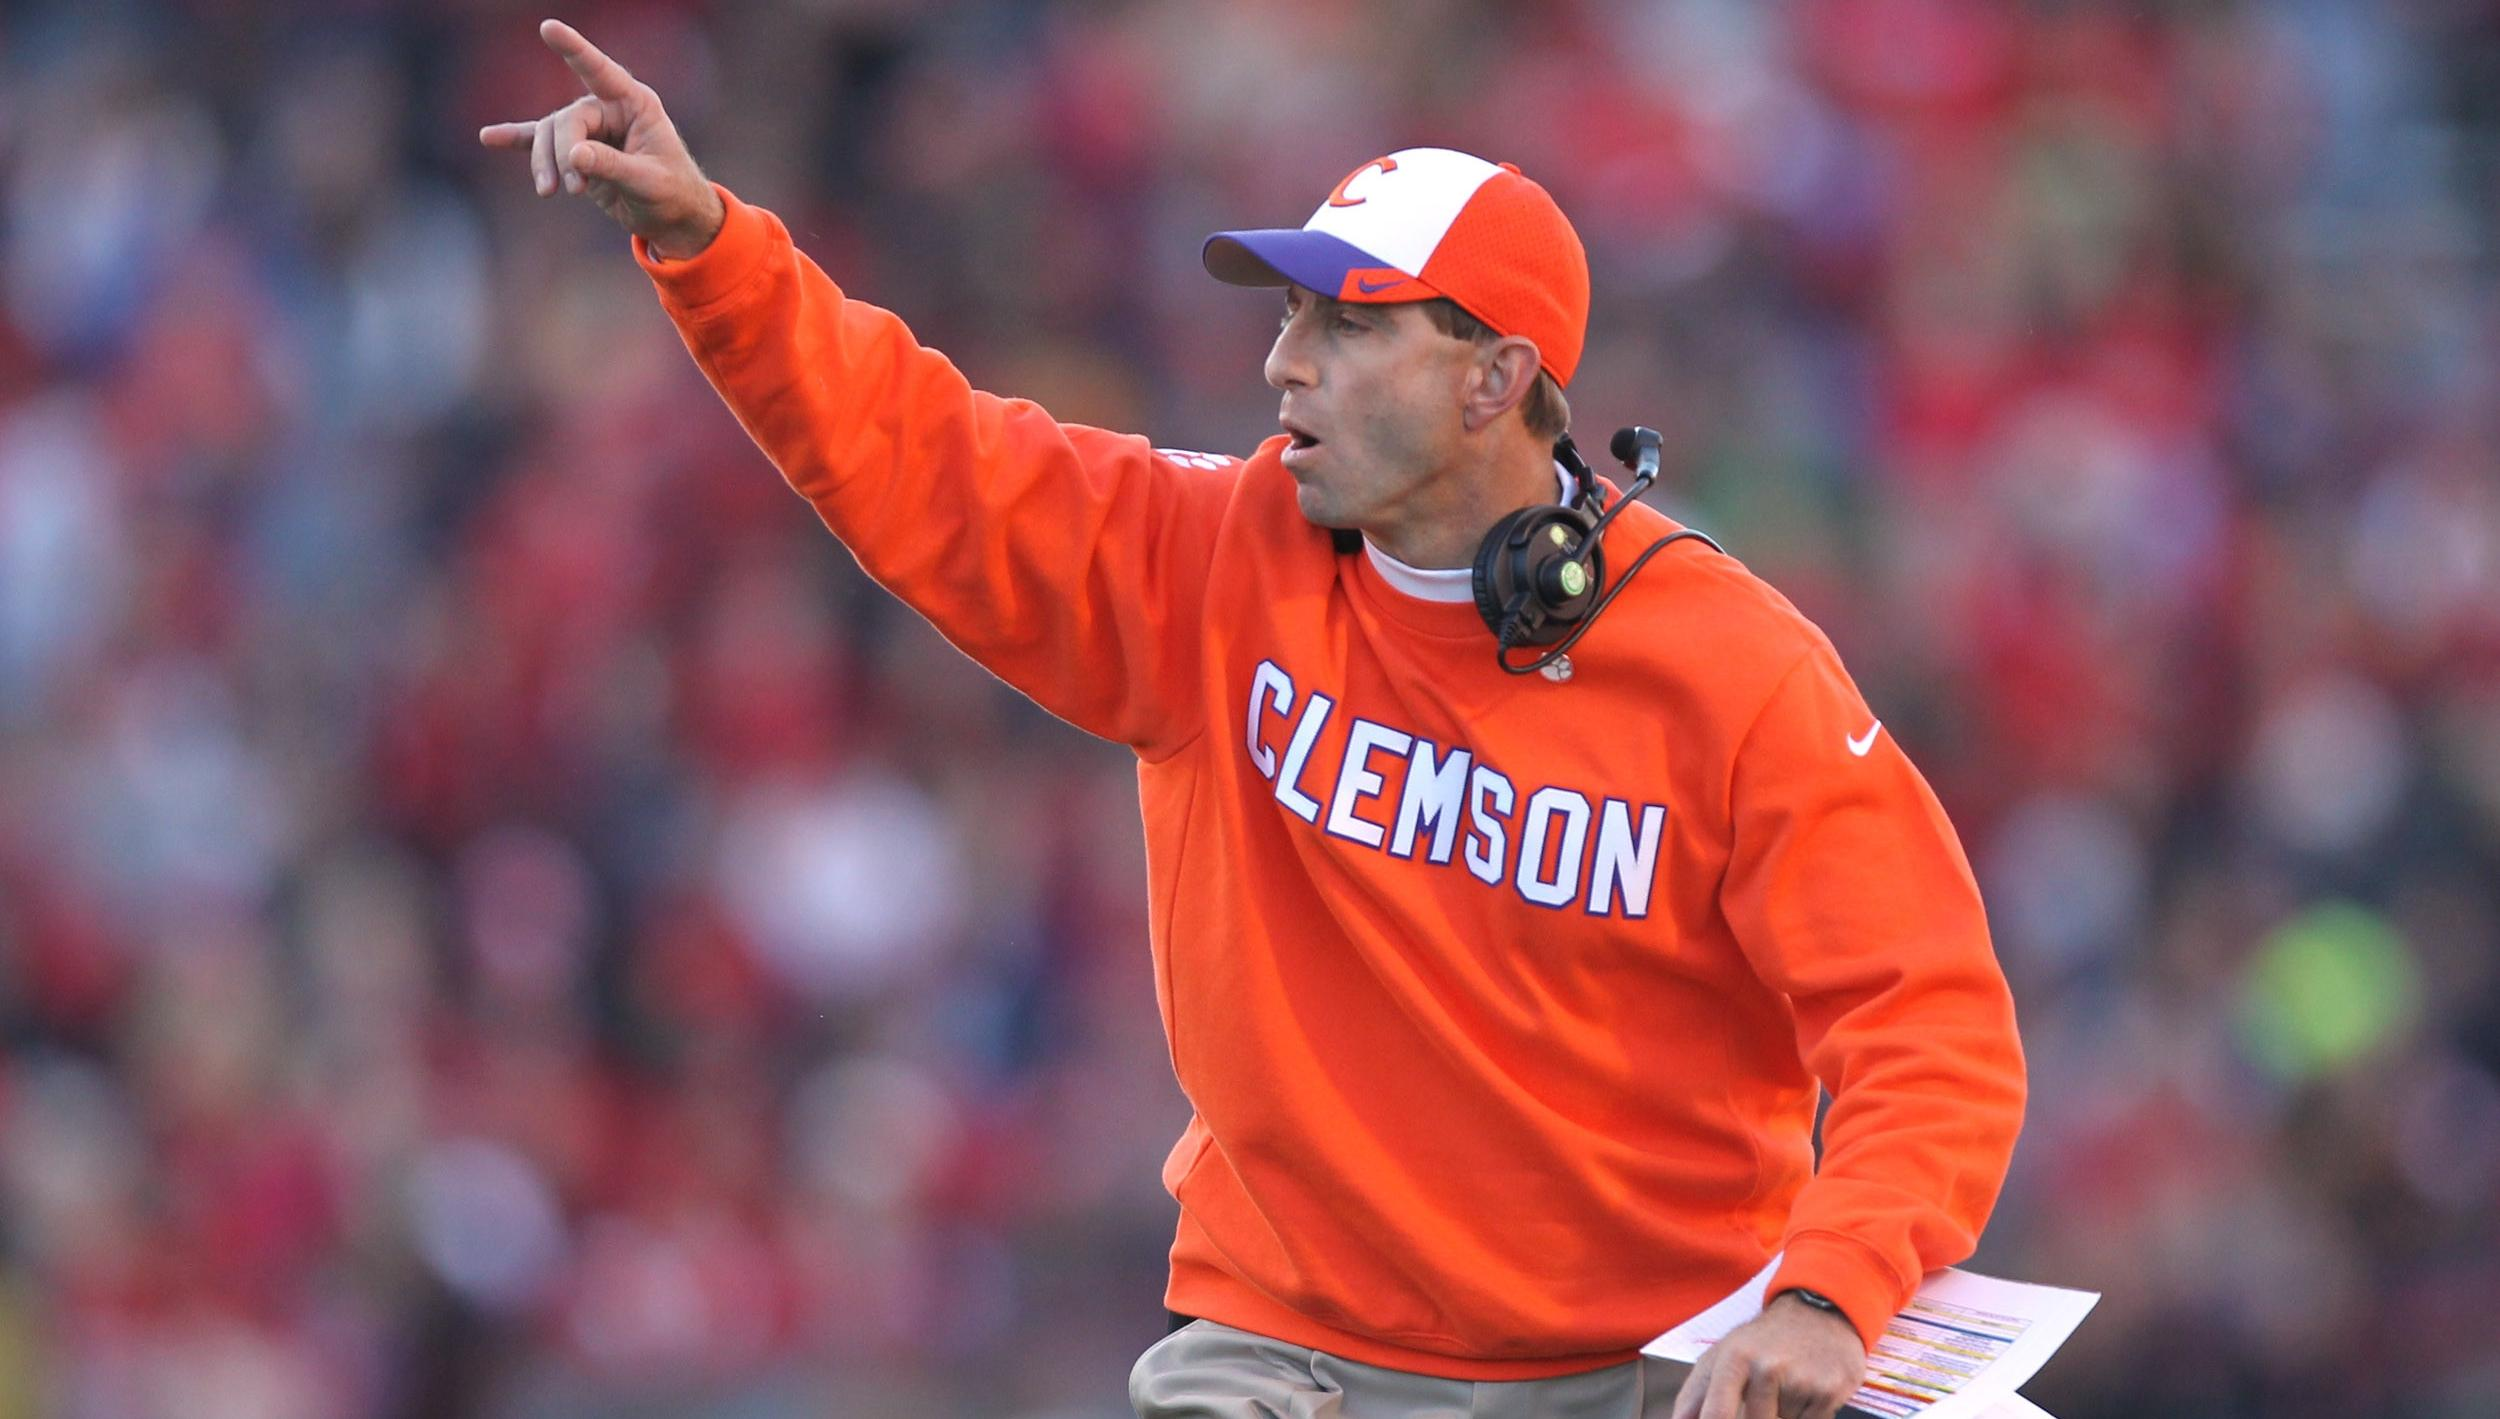 Swinney One of 10 Finalists for Liberty Mutual Coach of the Year